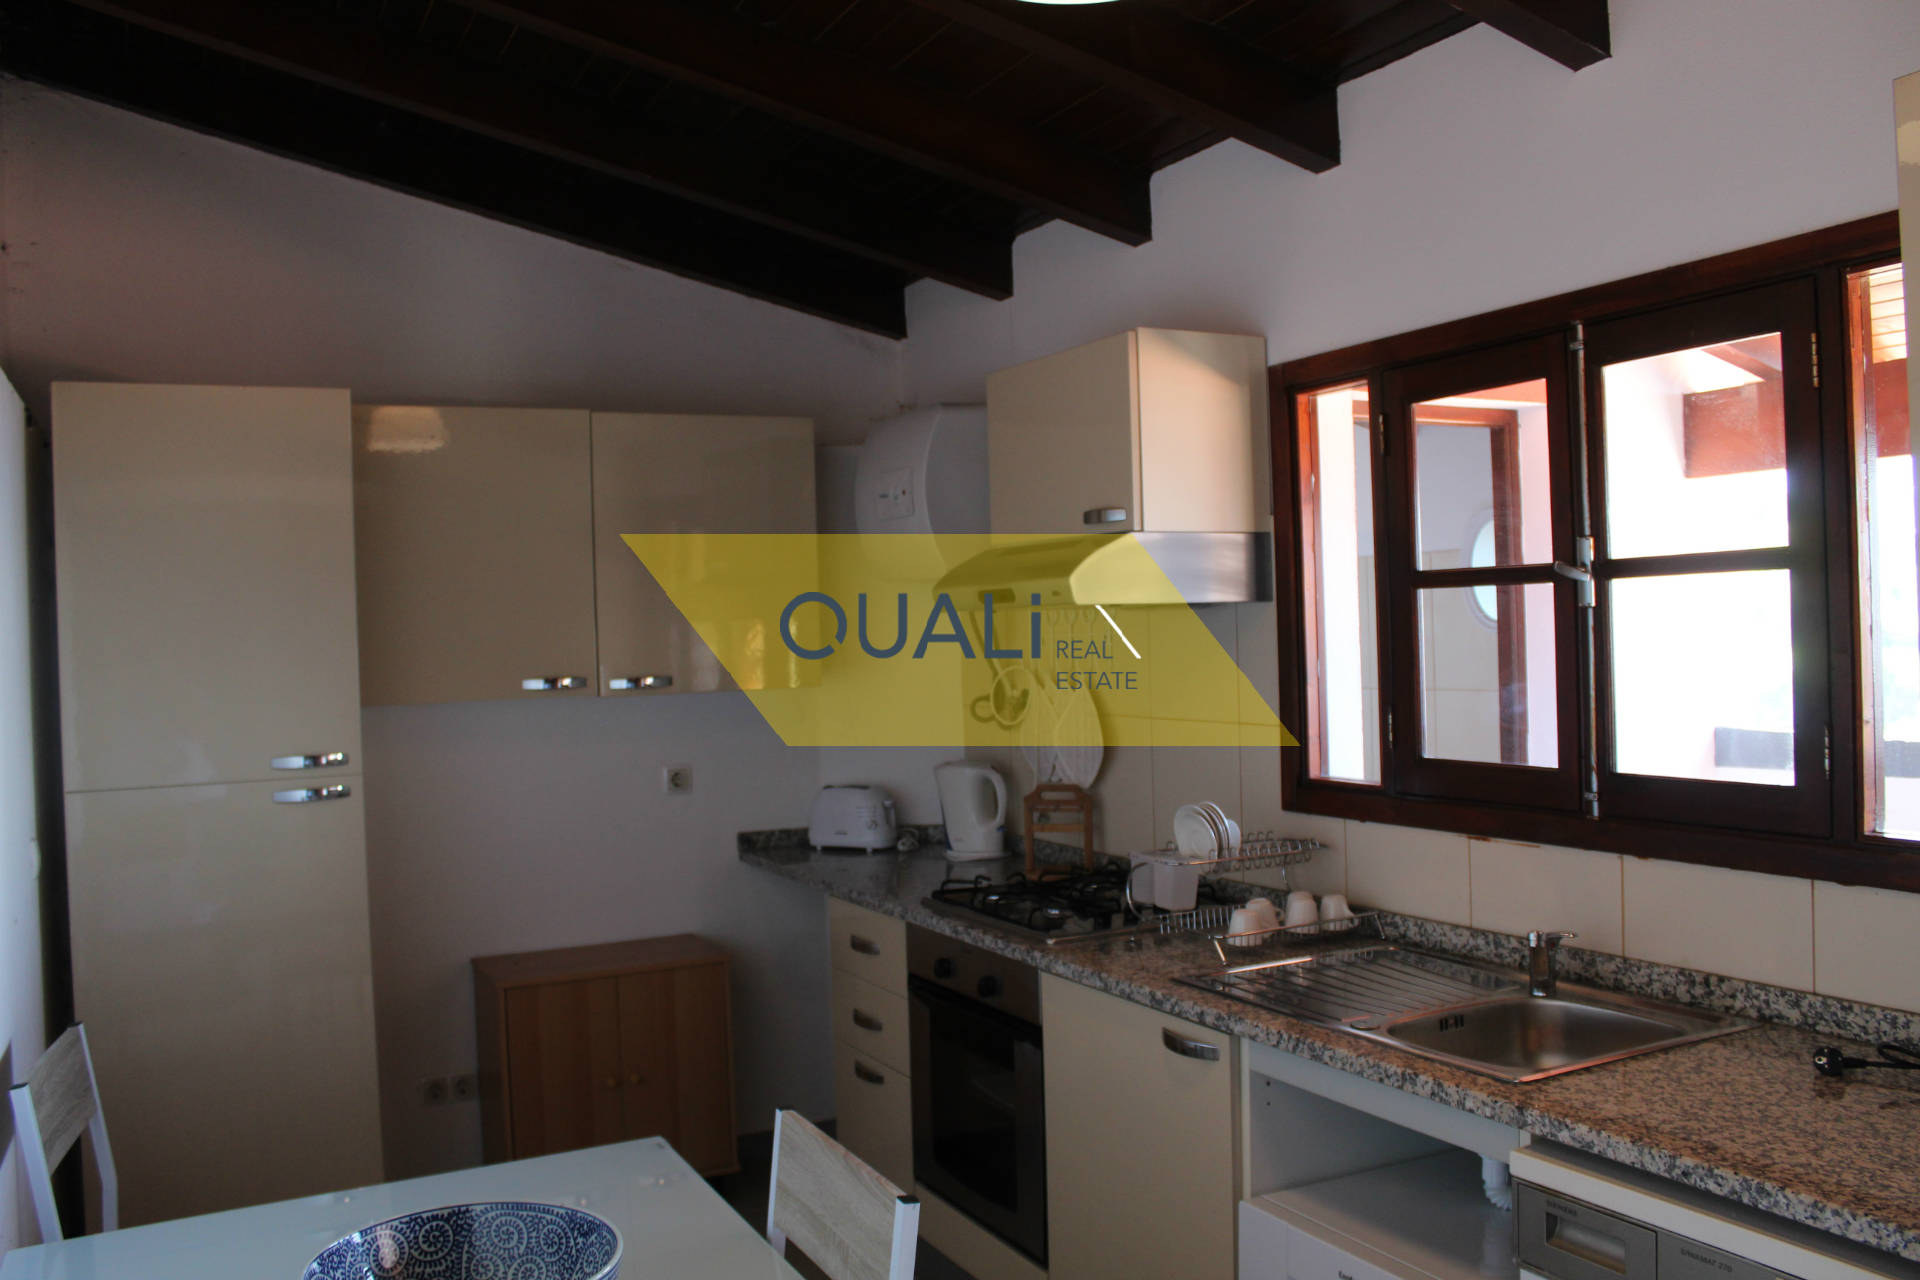 Two 2 bedroom Townhouses with land of 3.900 m2 in Calheta for Sale.